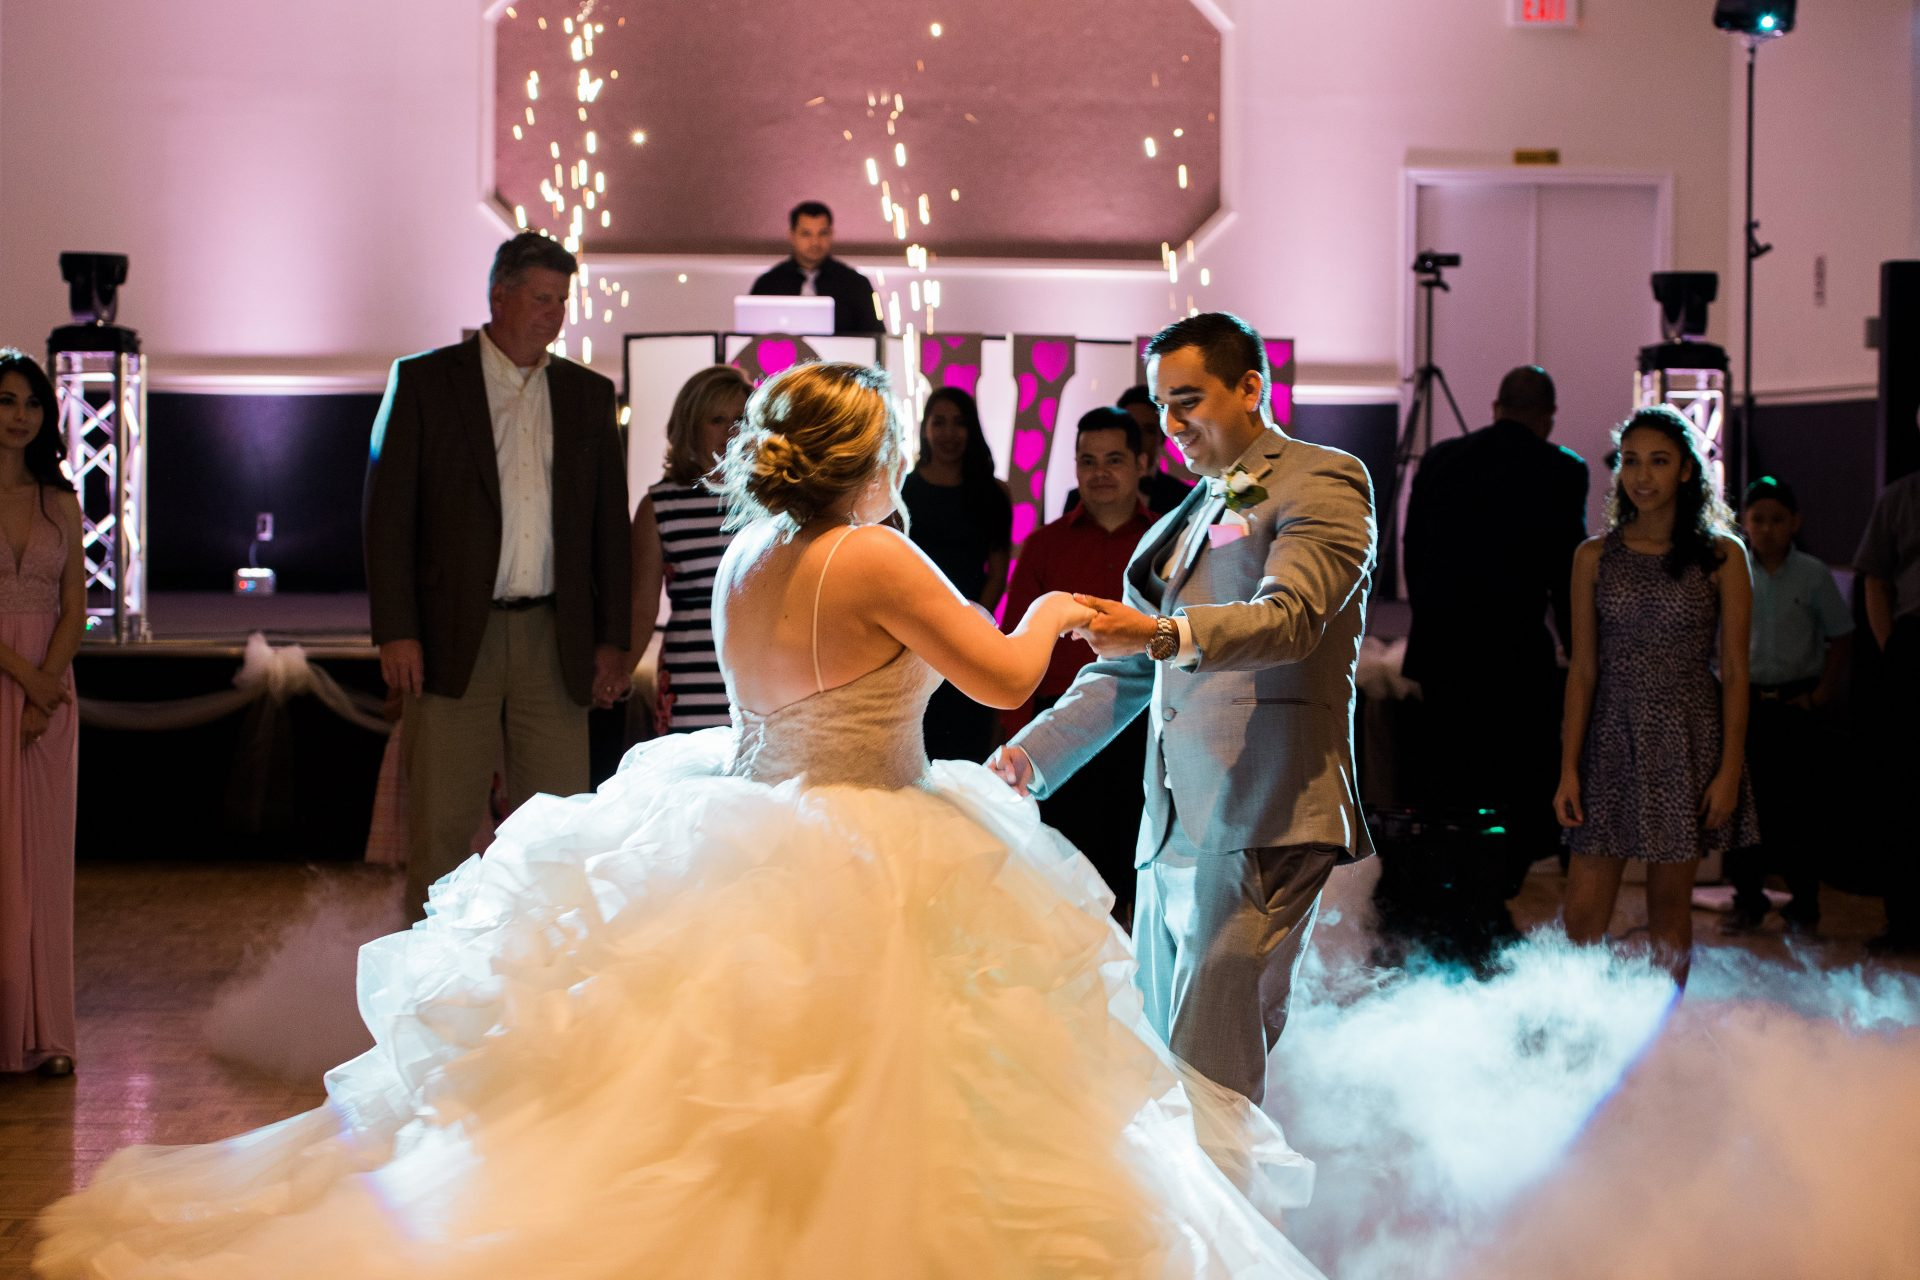 View More: http://careyannephotography.pass.us/lindsay--daniel-wedding